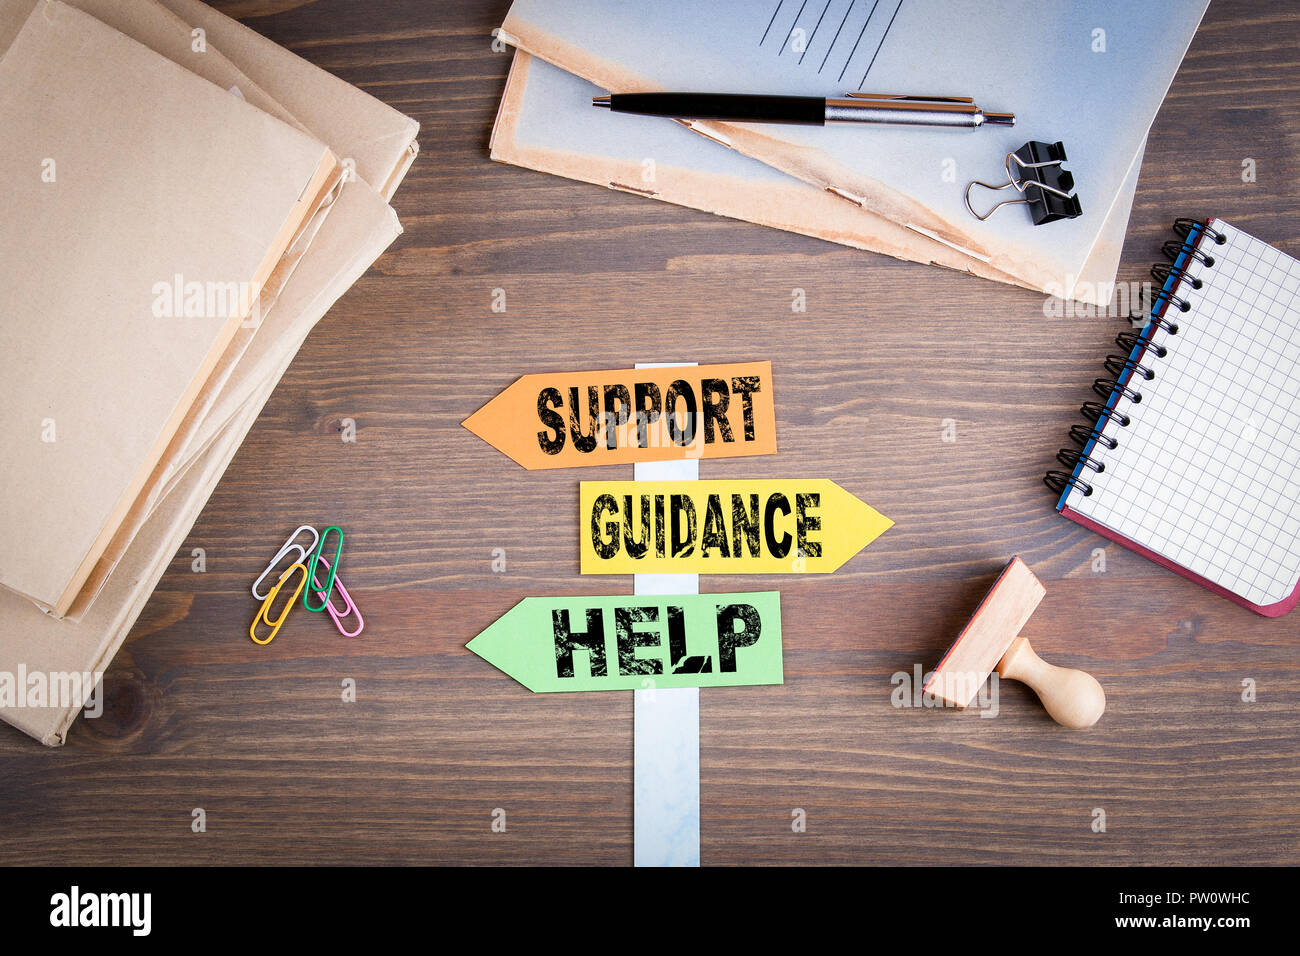 Support, Guidance and Help concept - Stock Image